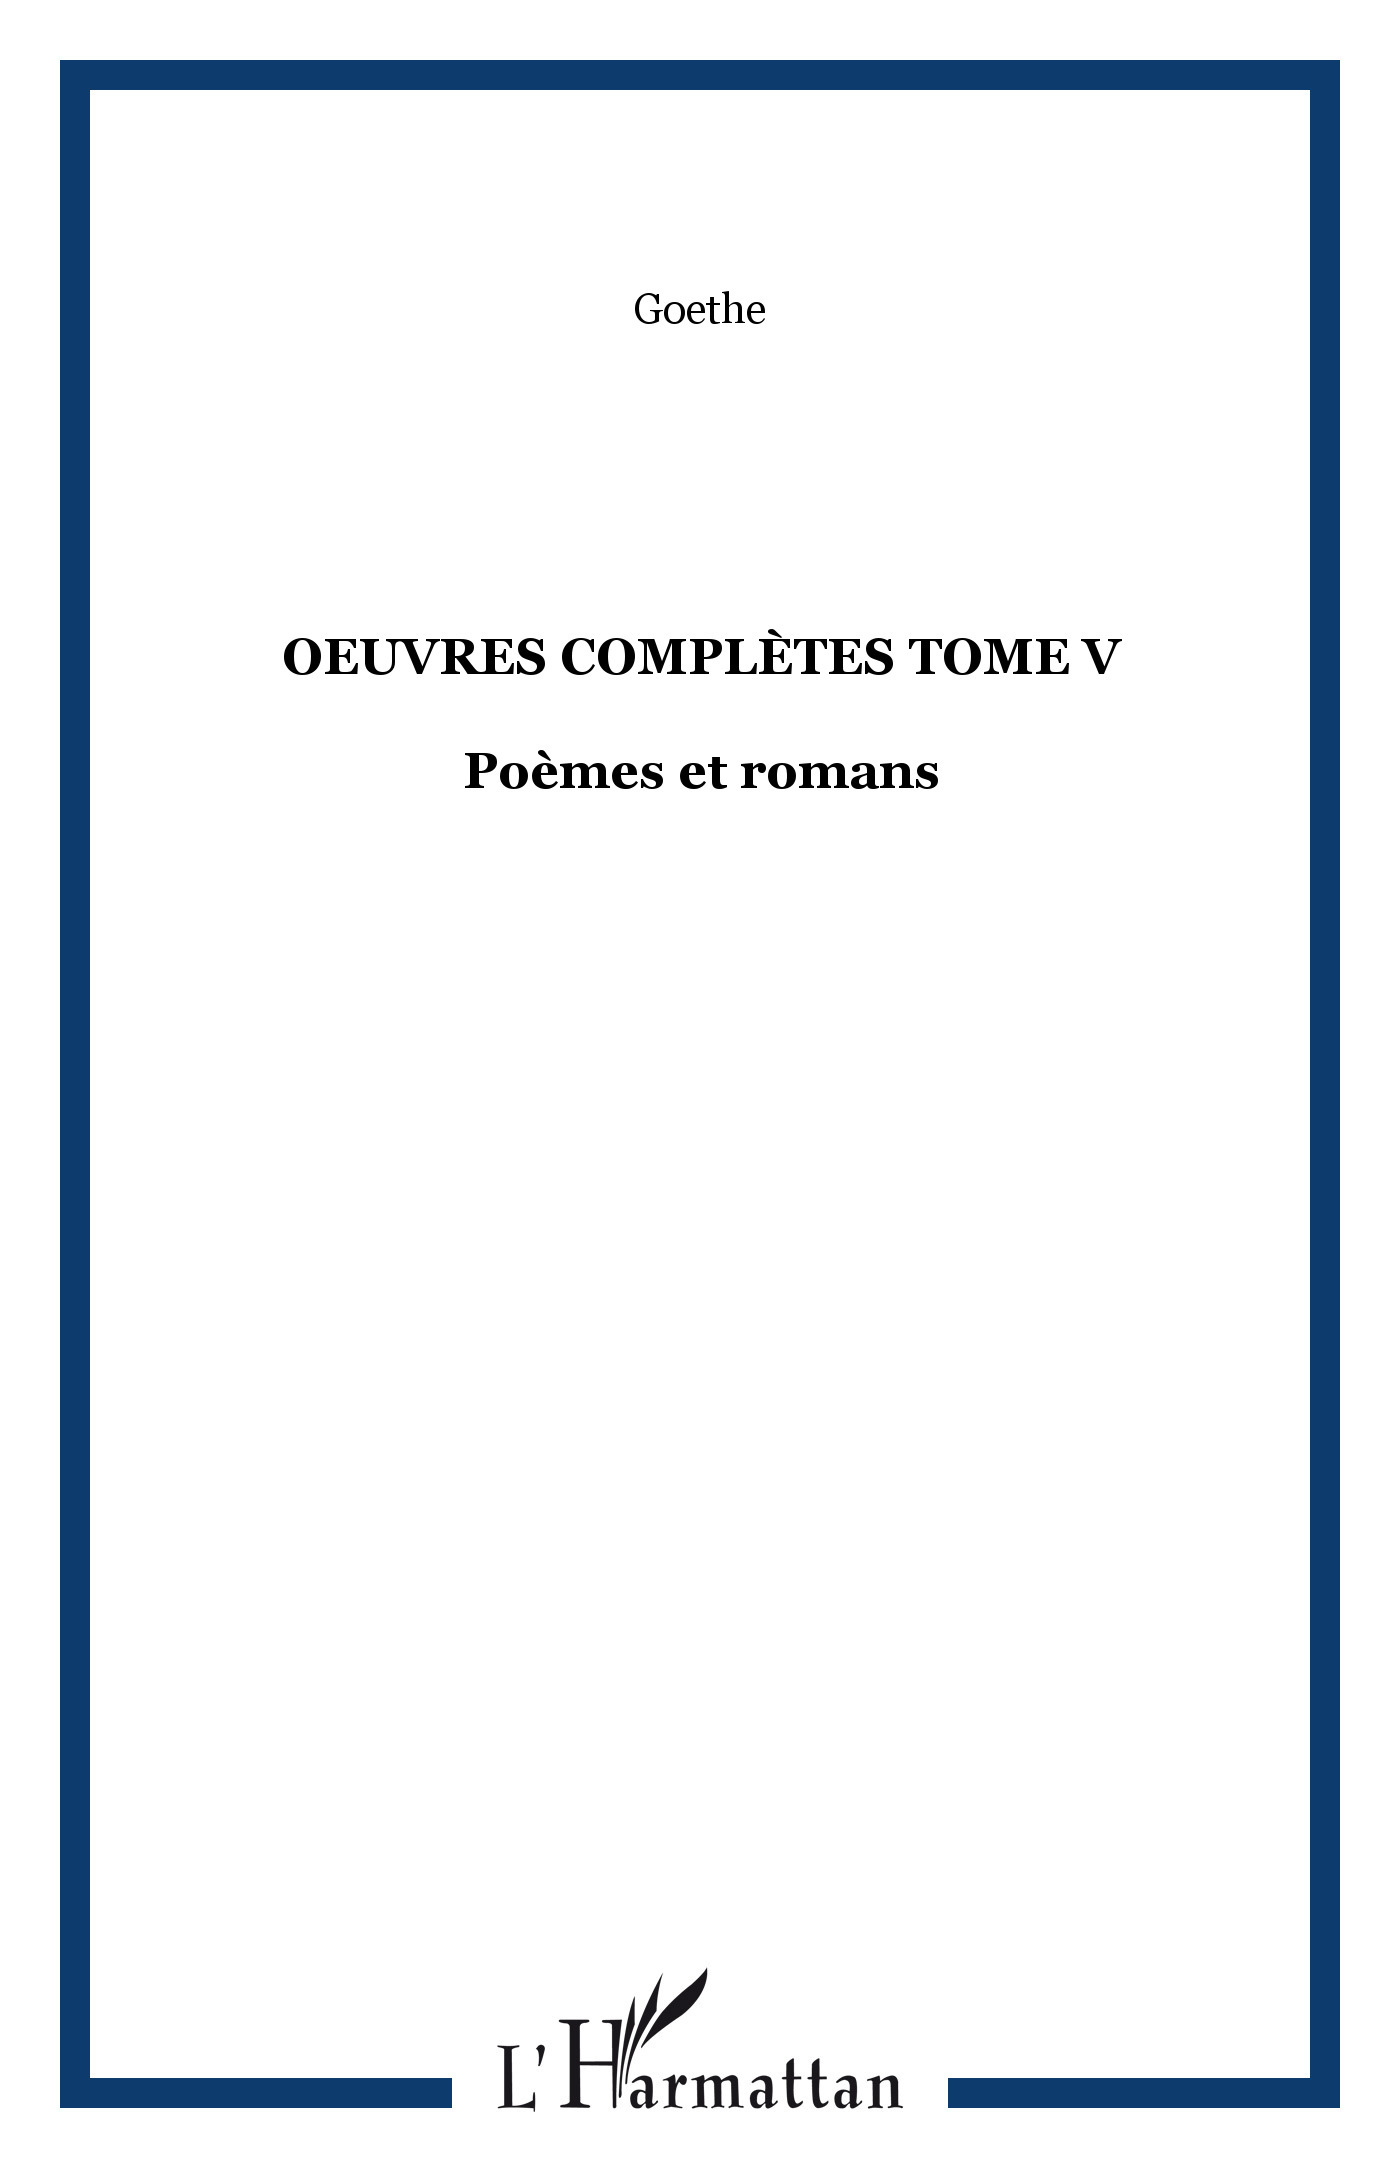 OEUVRES COMPLETES TOME V - POEMES ET ROMANS